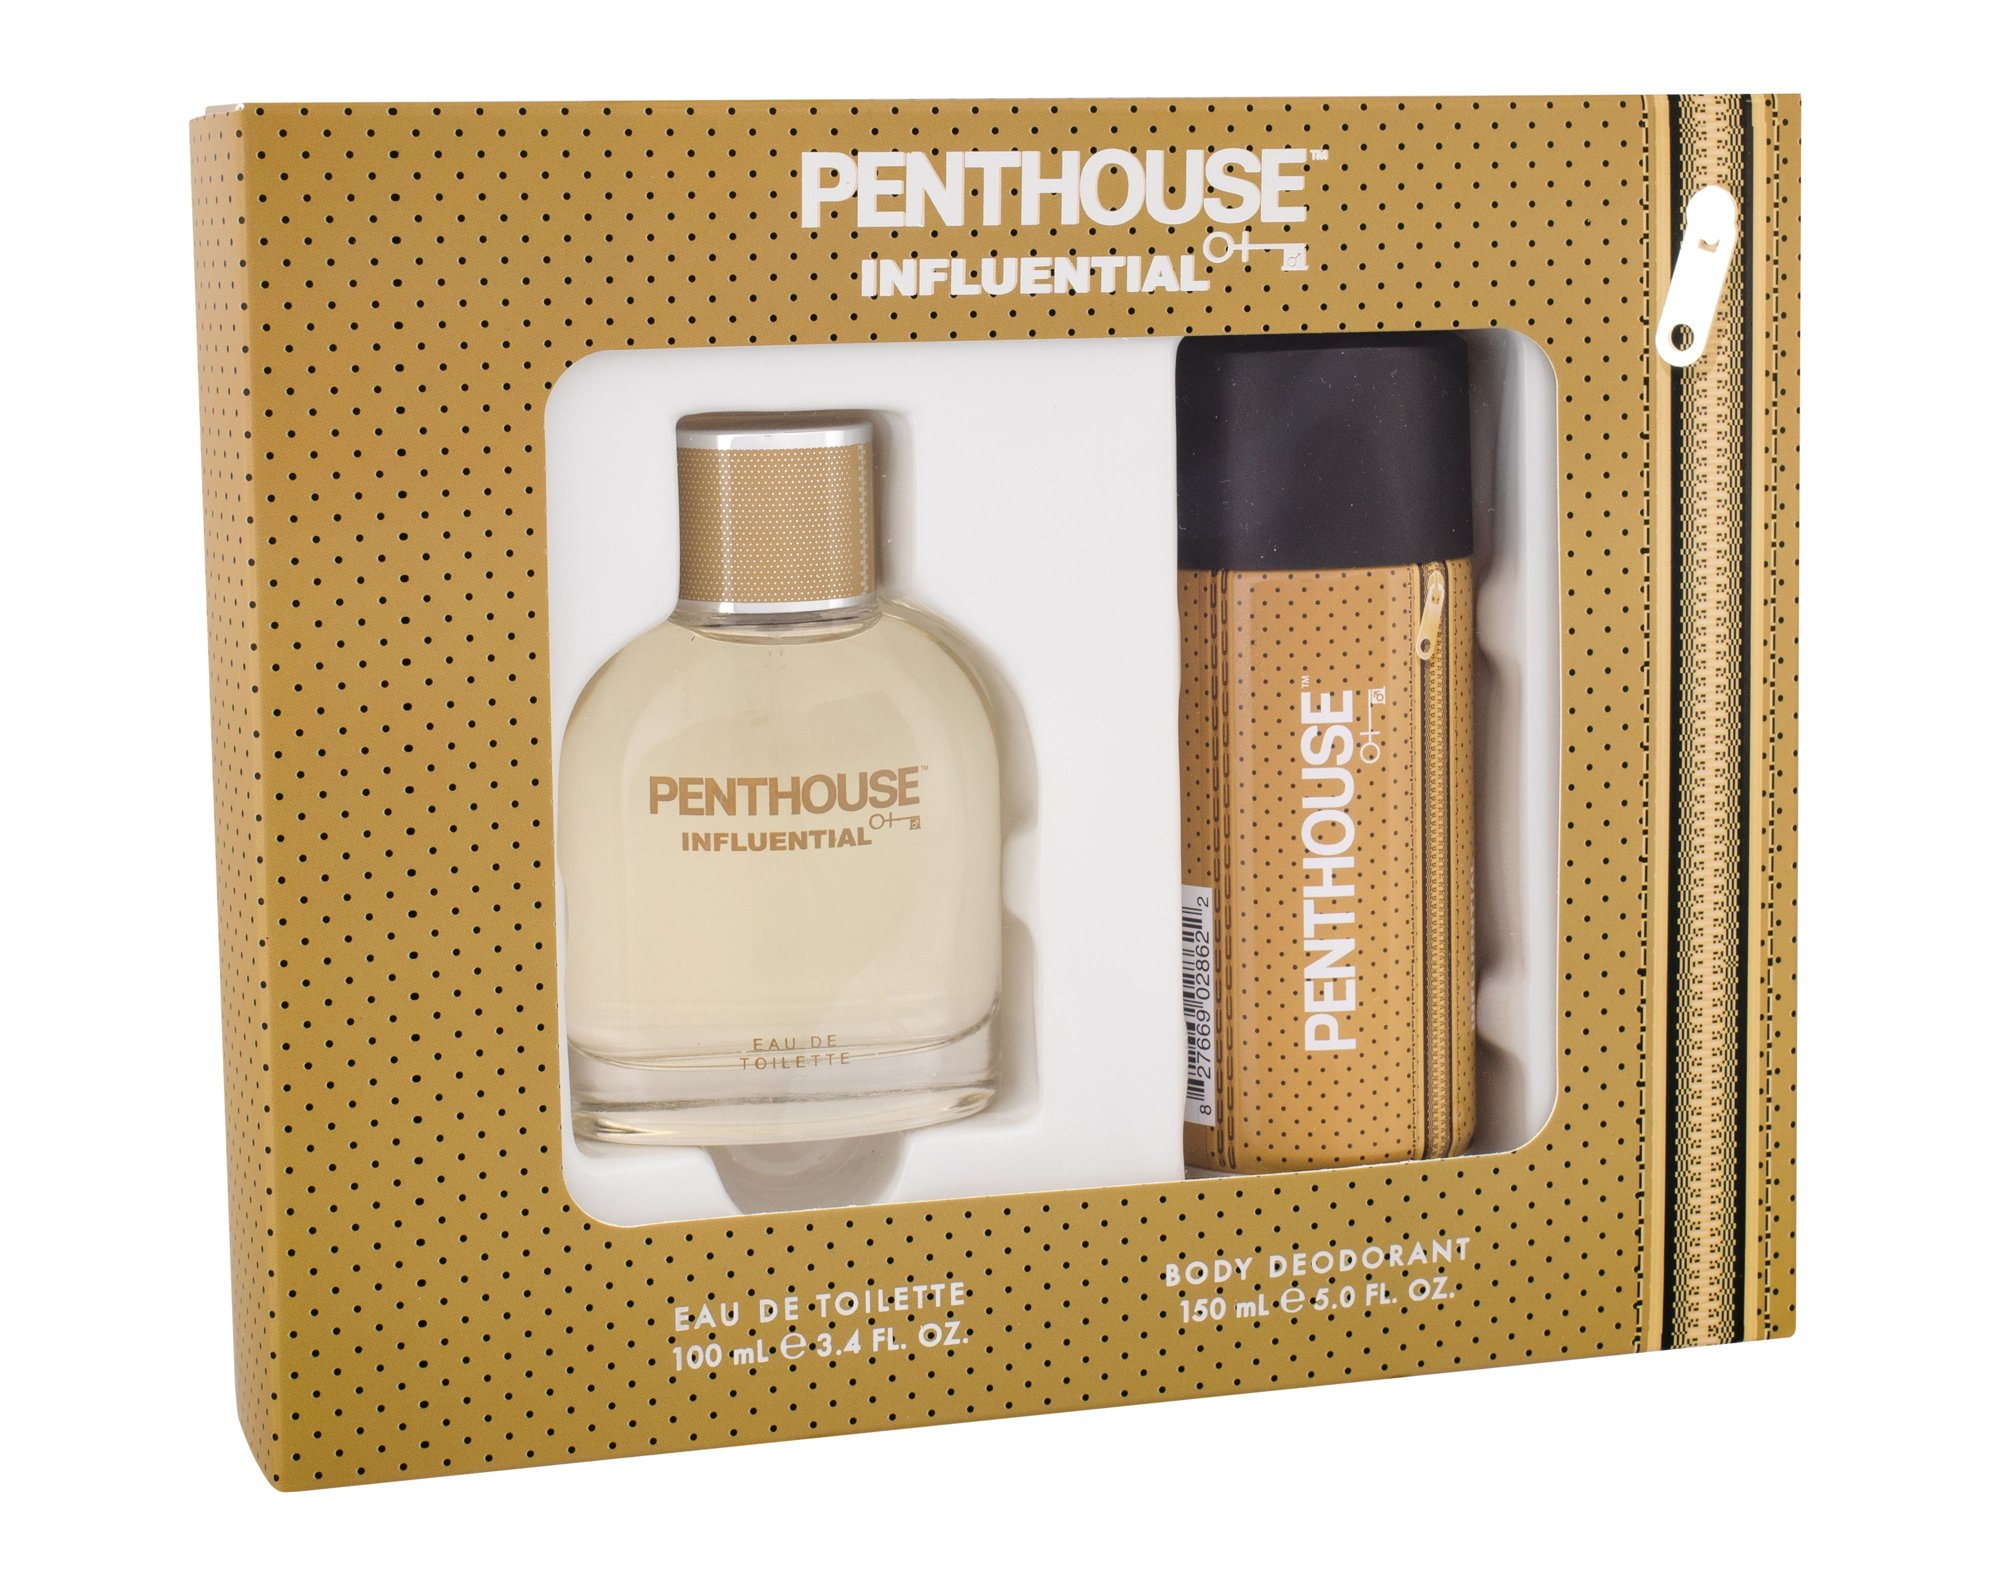 Penthouse Influential EDT 100ml